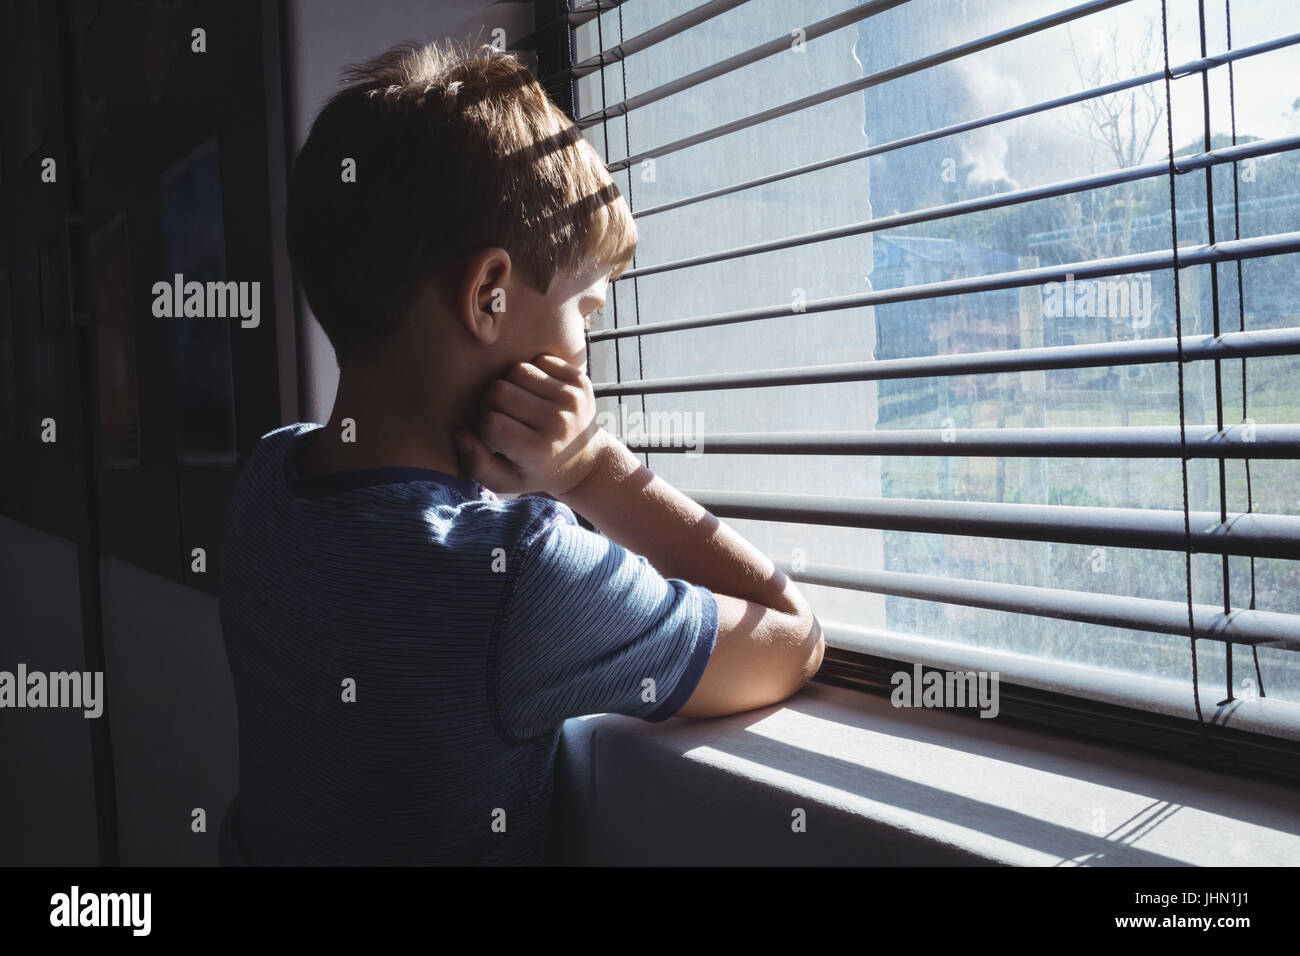 Side view of boy looking through window glass of school - Stock Image